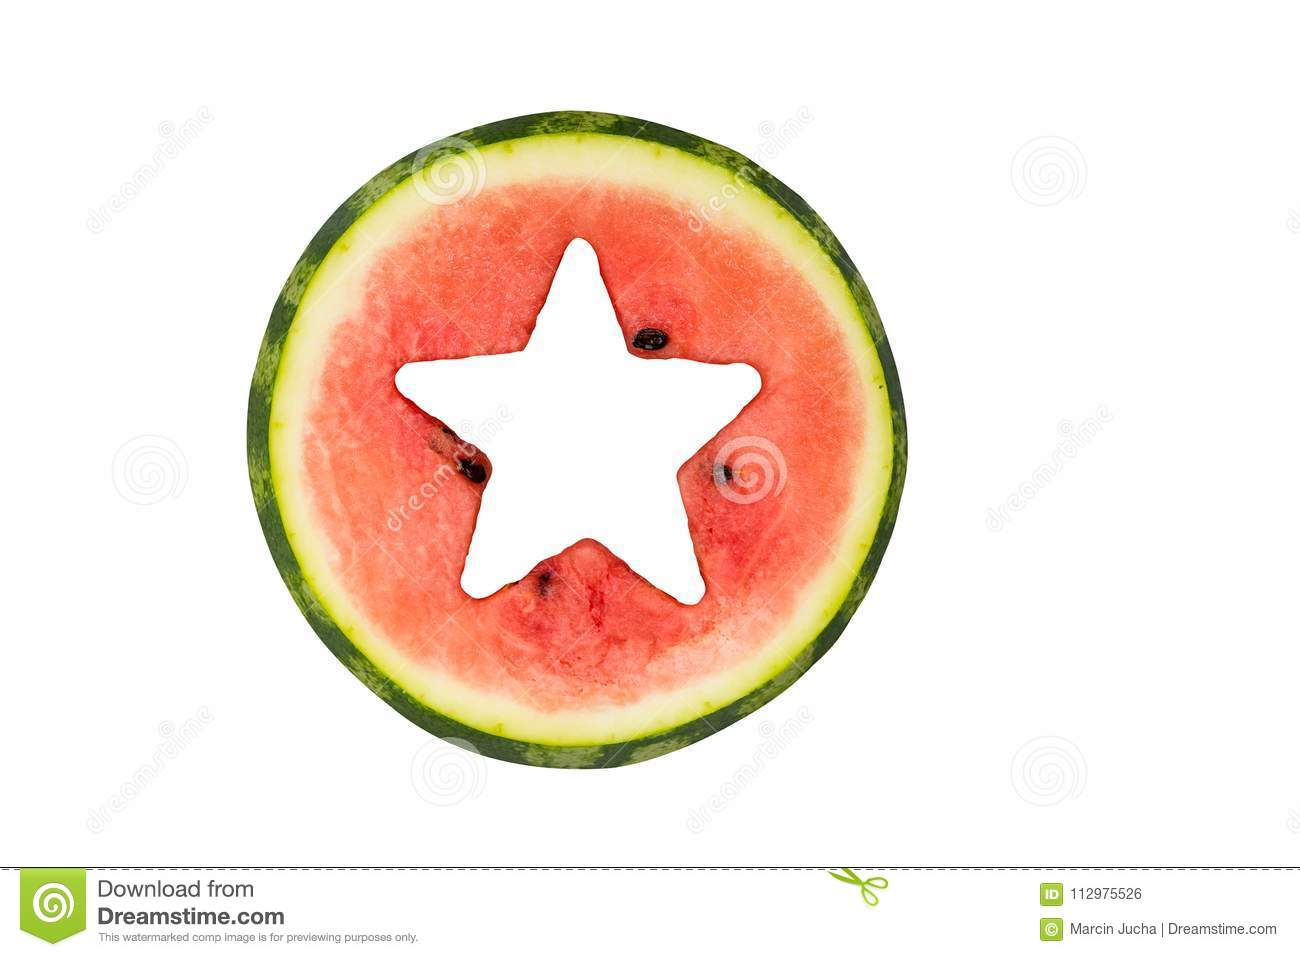 Star shape cut off in watermelon, isolated